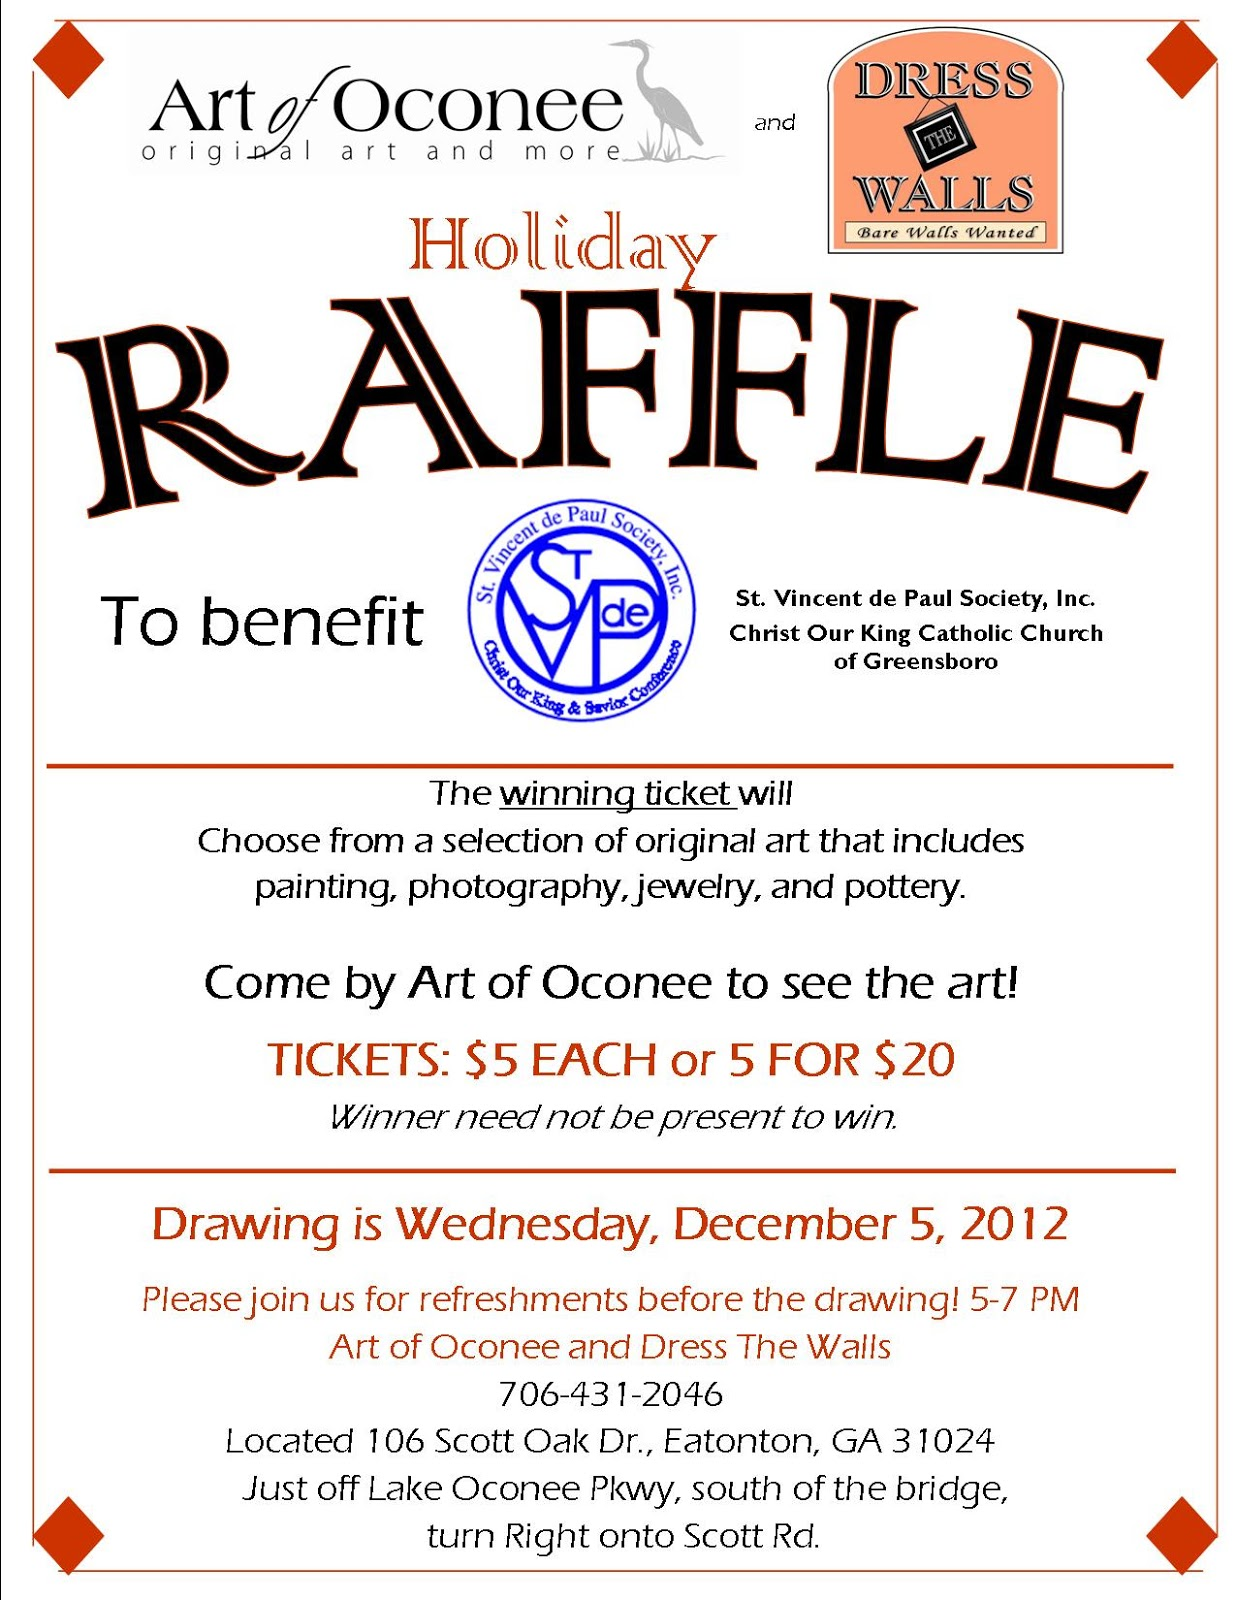 raffle sign ideas 28 images raffle ticket booth sign poster